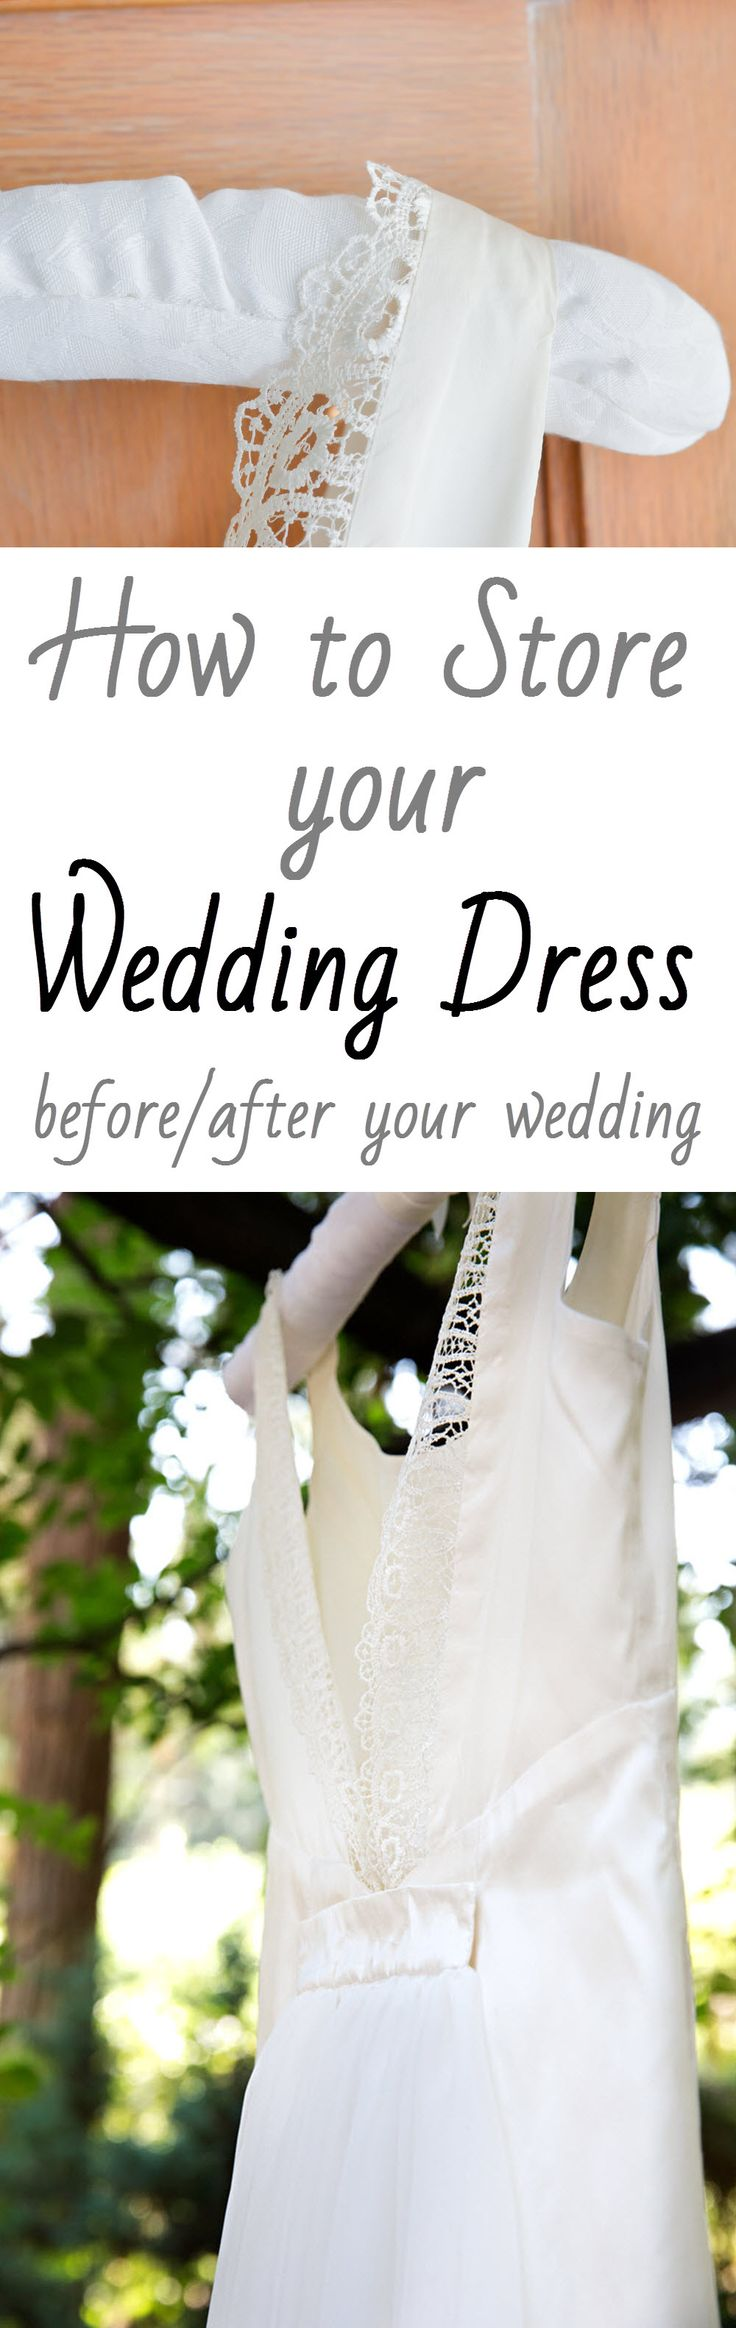 13 best wedding images on pinterest easy tips on how to store wedding dress before and after the wedding a few ombrellifo Gallery